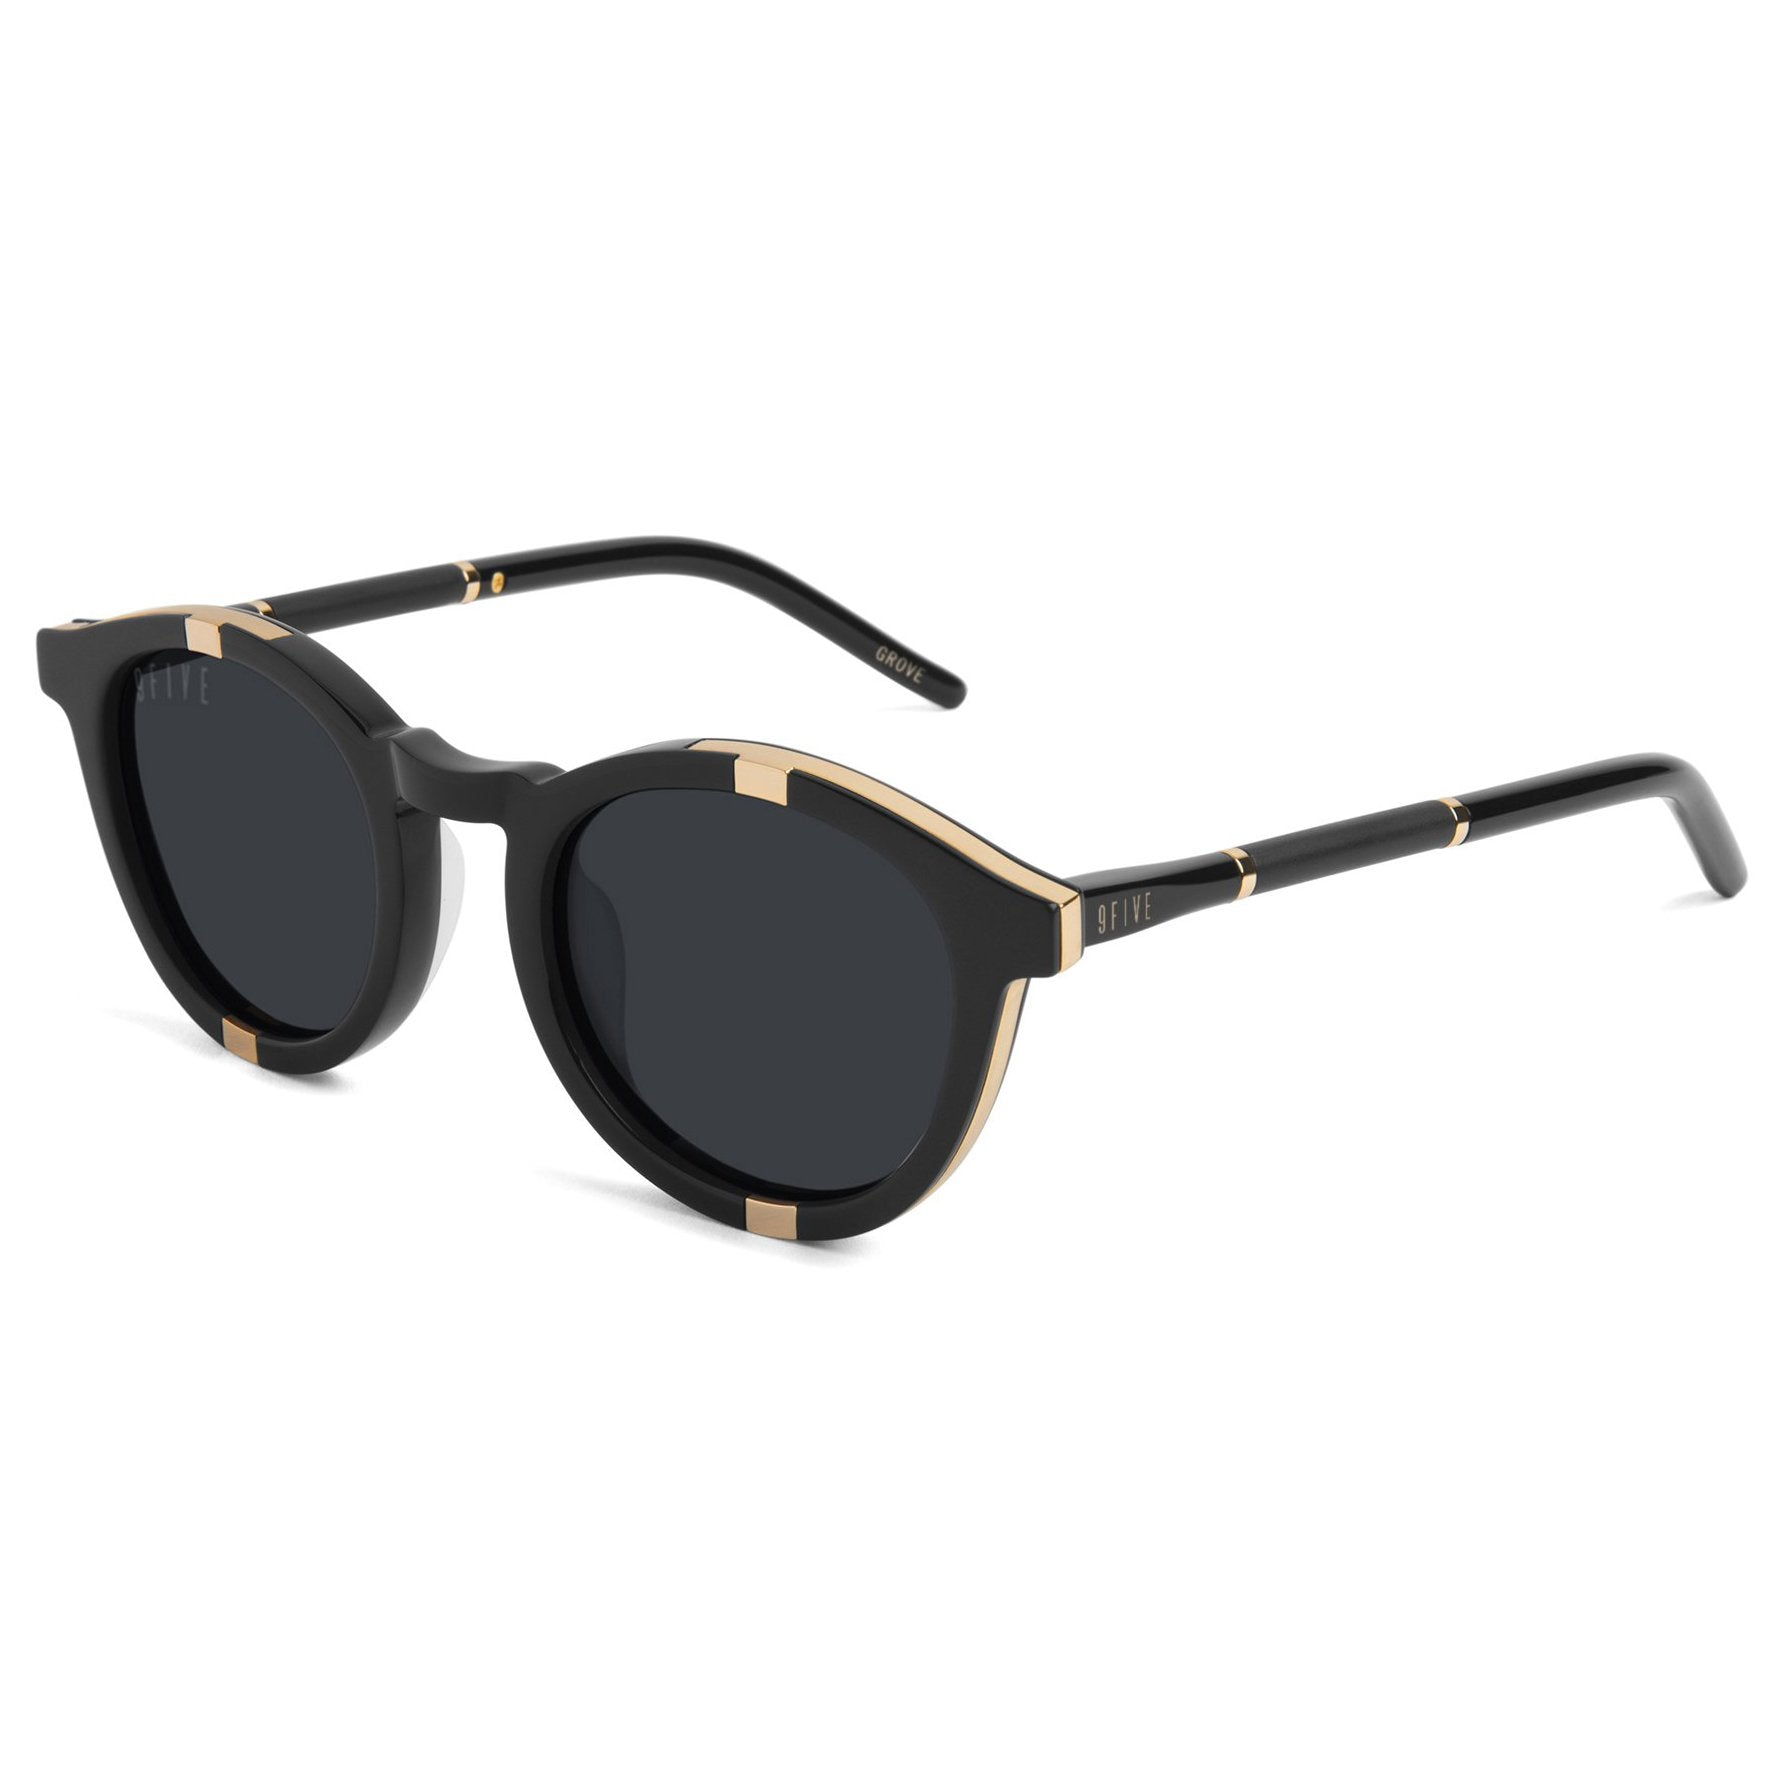 9 Five Grove Sunglasses - Black/Gold Product Photo #1